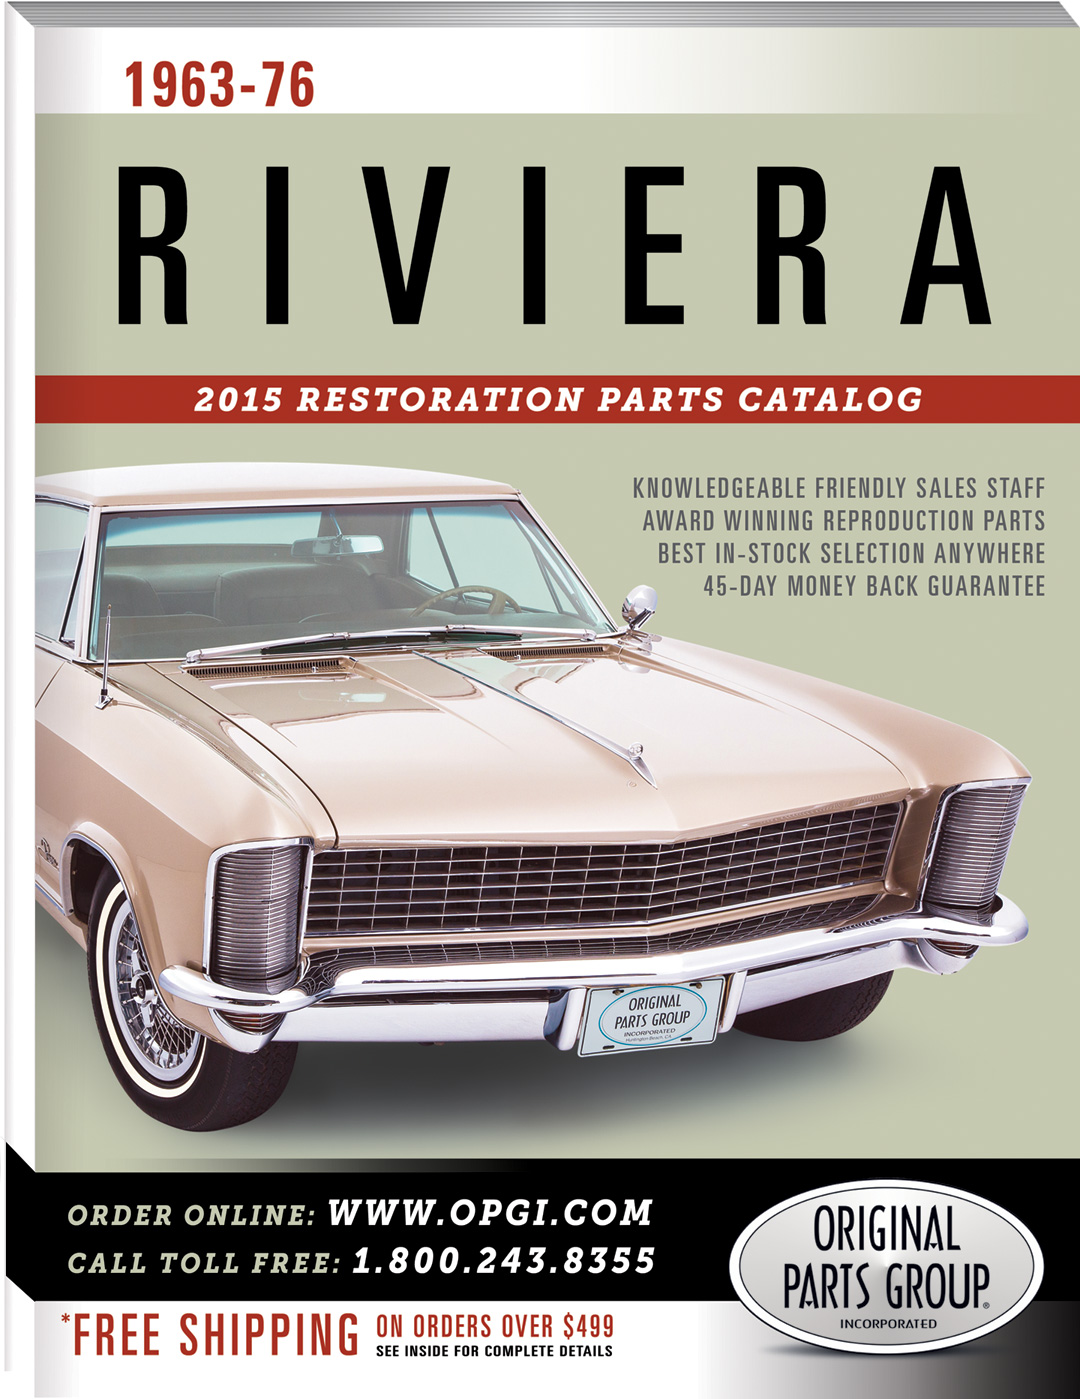 2015 Edition of 1963-76 Riviera Restoration Parts Catalog | OPGI Blog